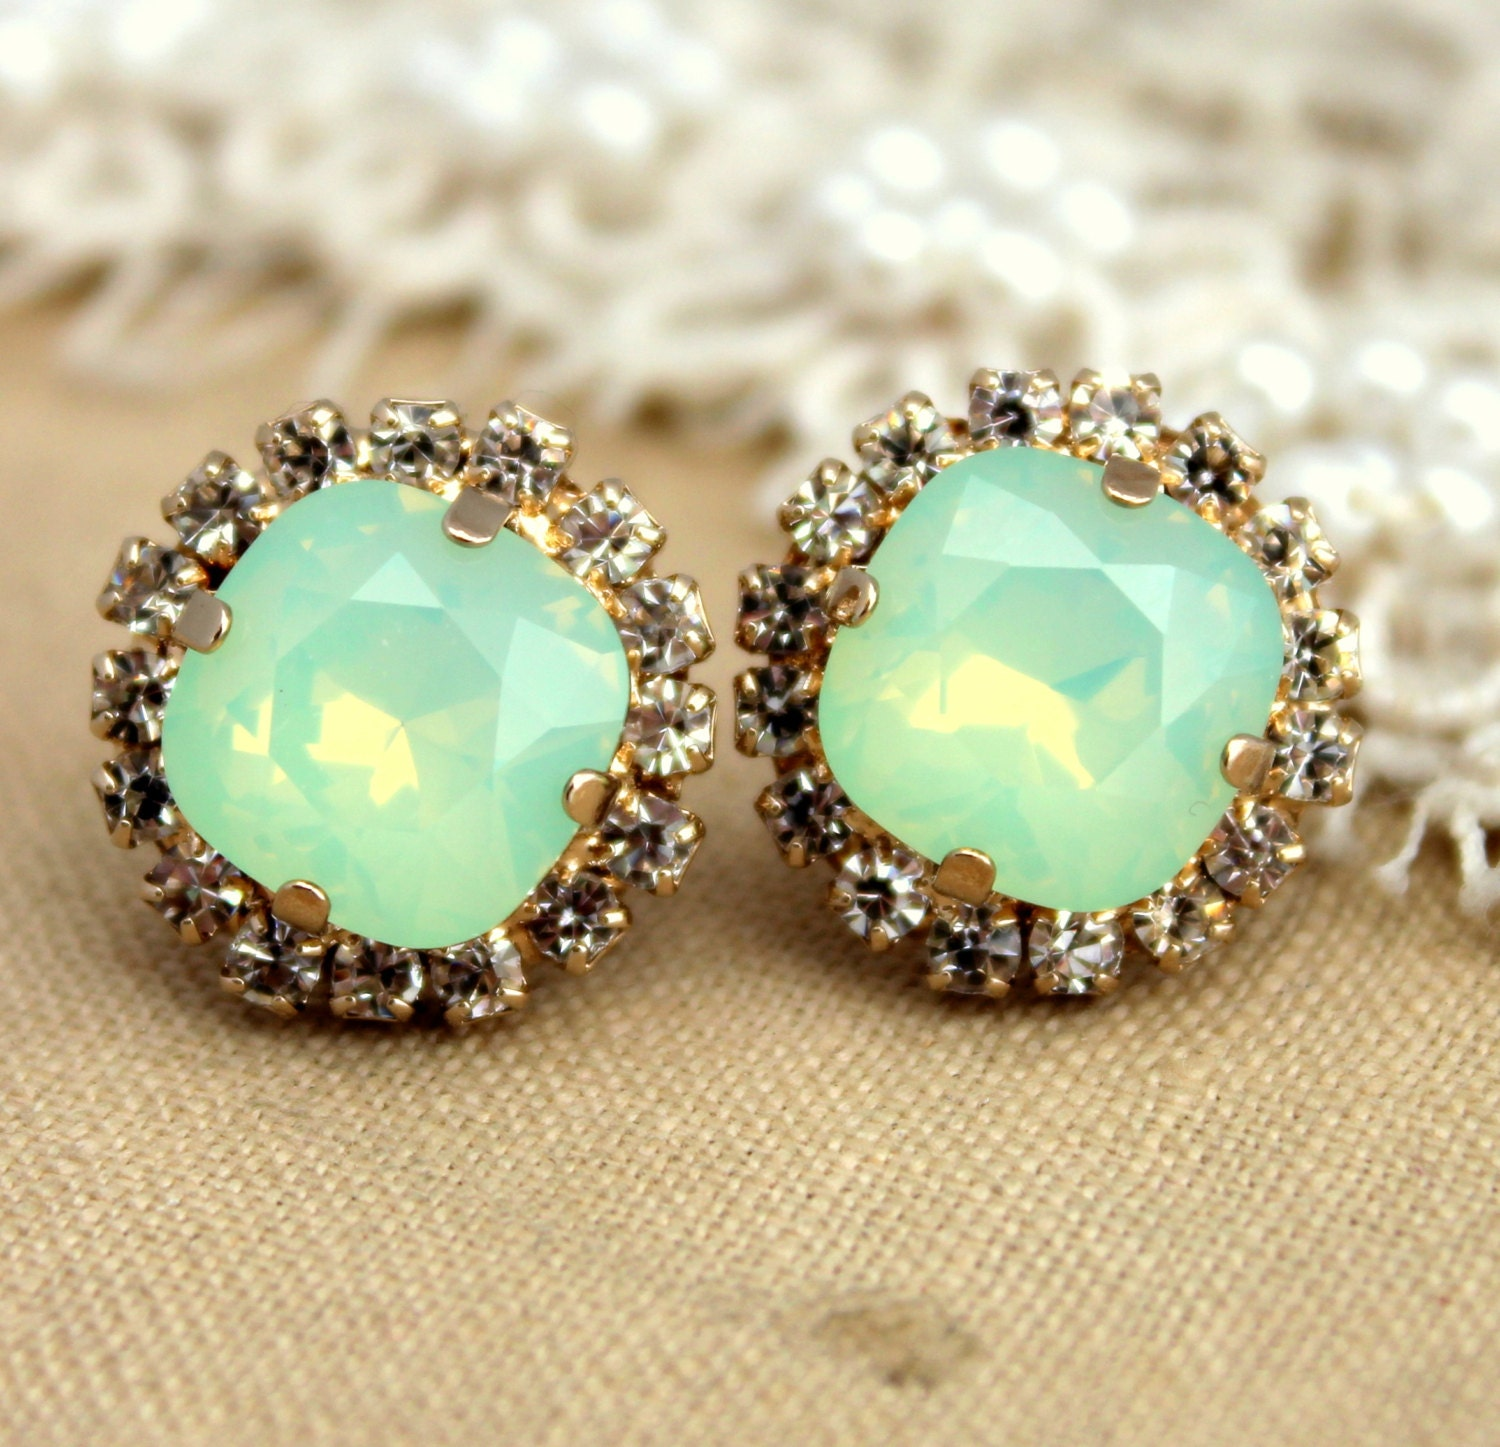 montana silversmiths opal fan scalloped earrings